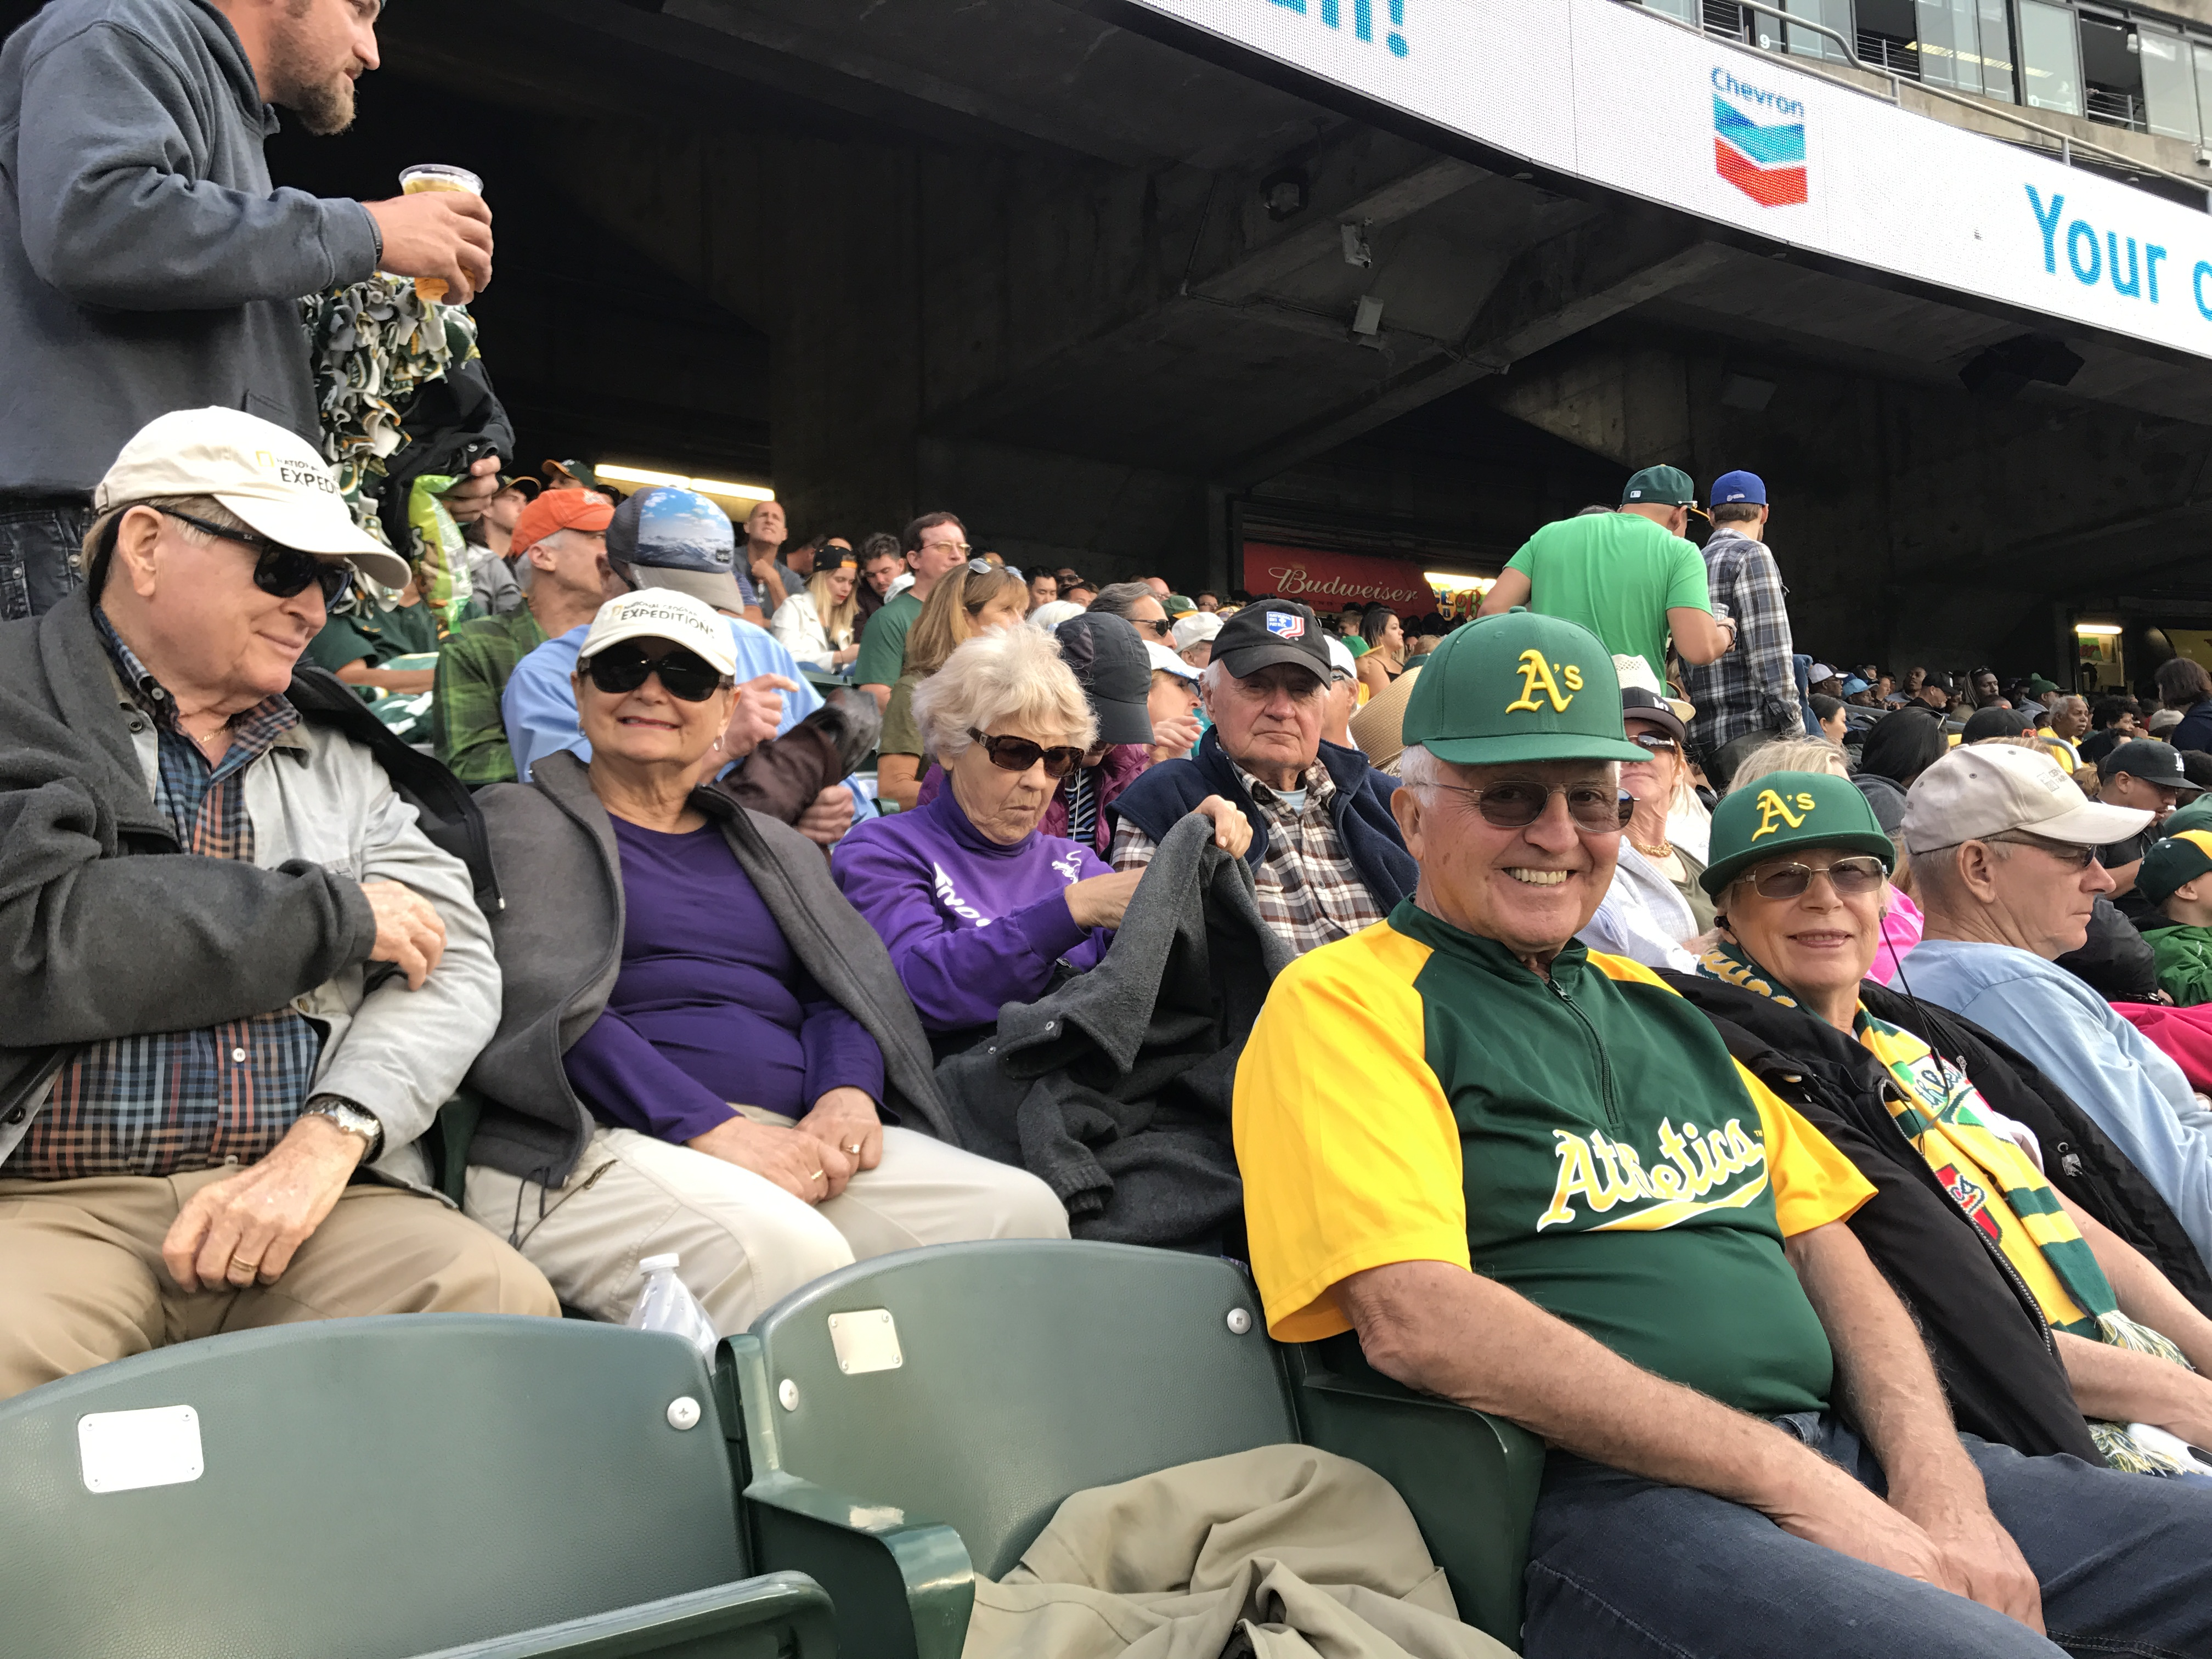 A's Game 2017